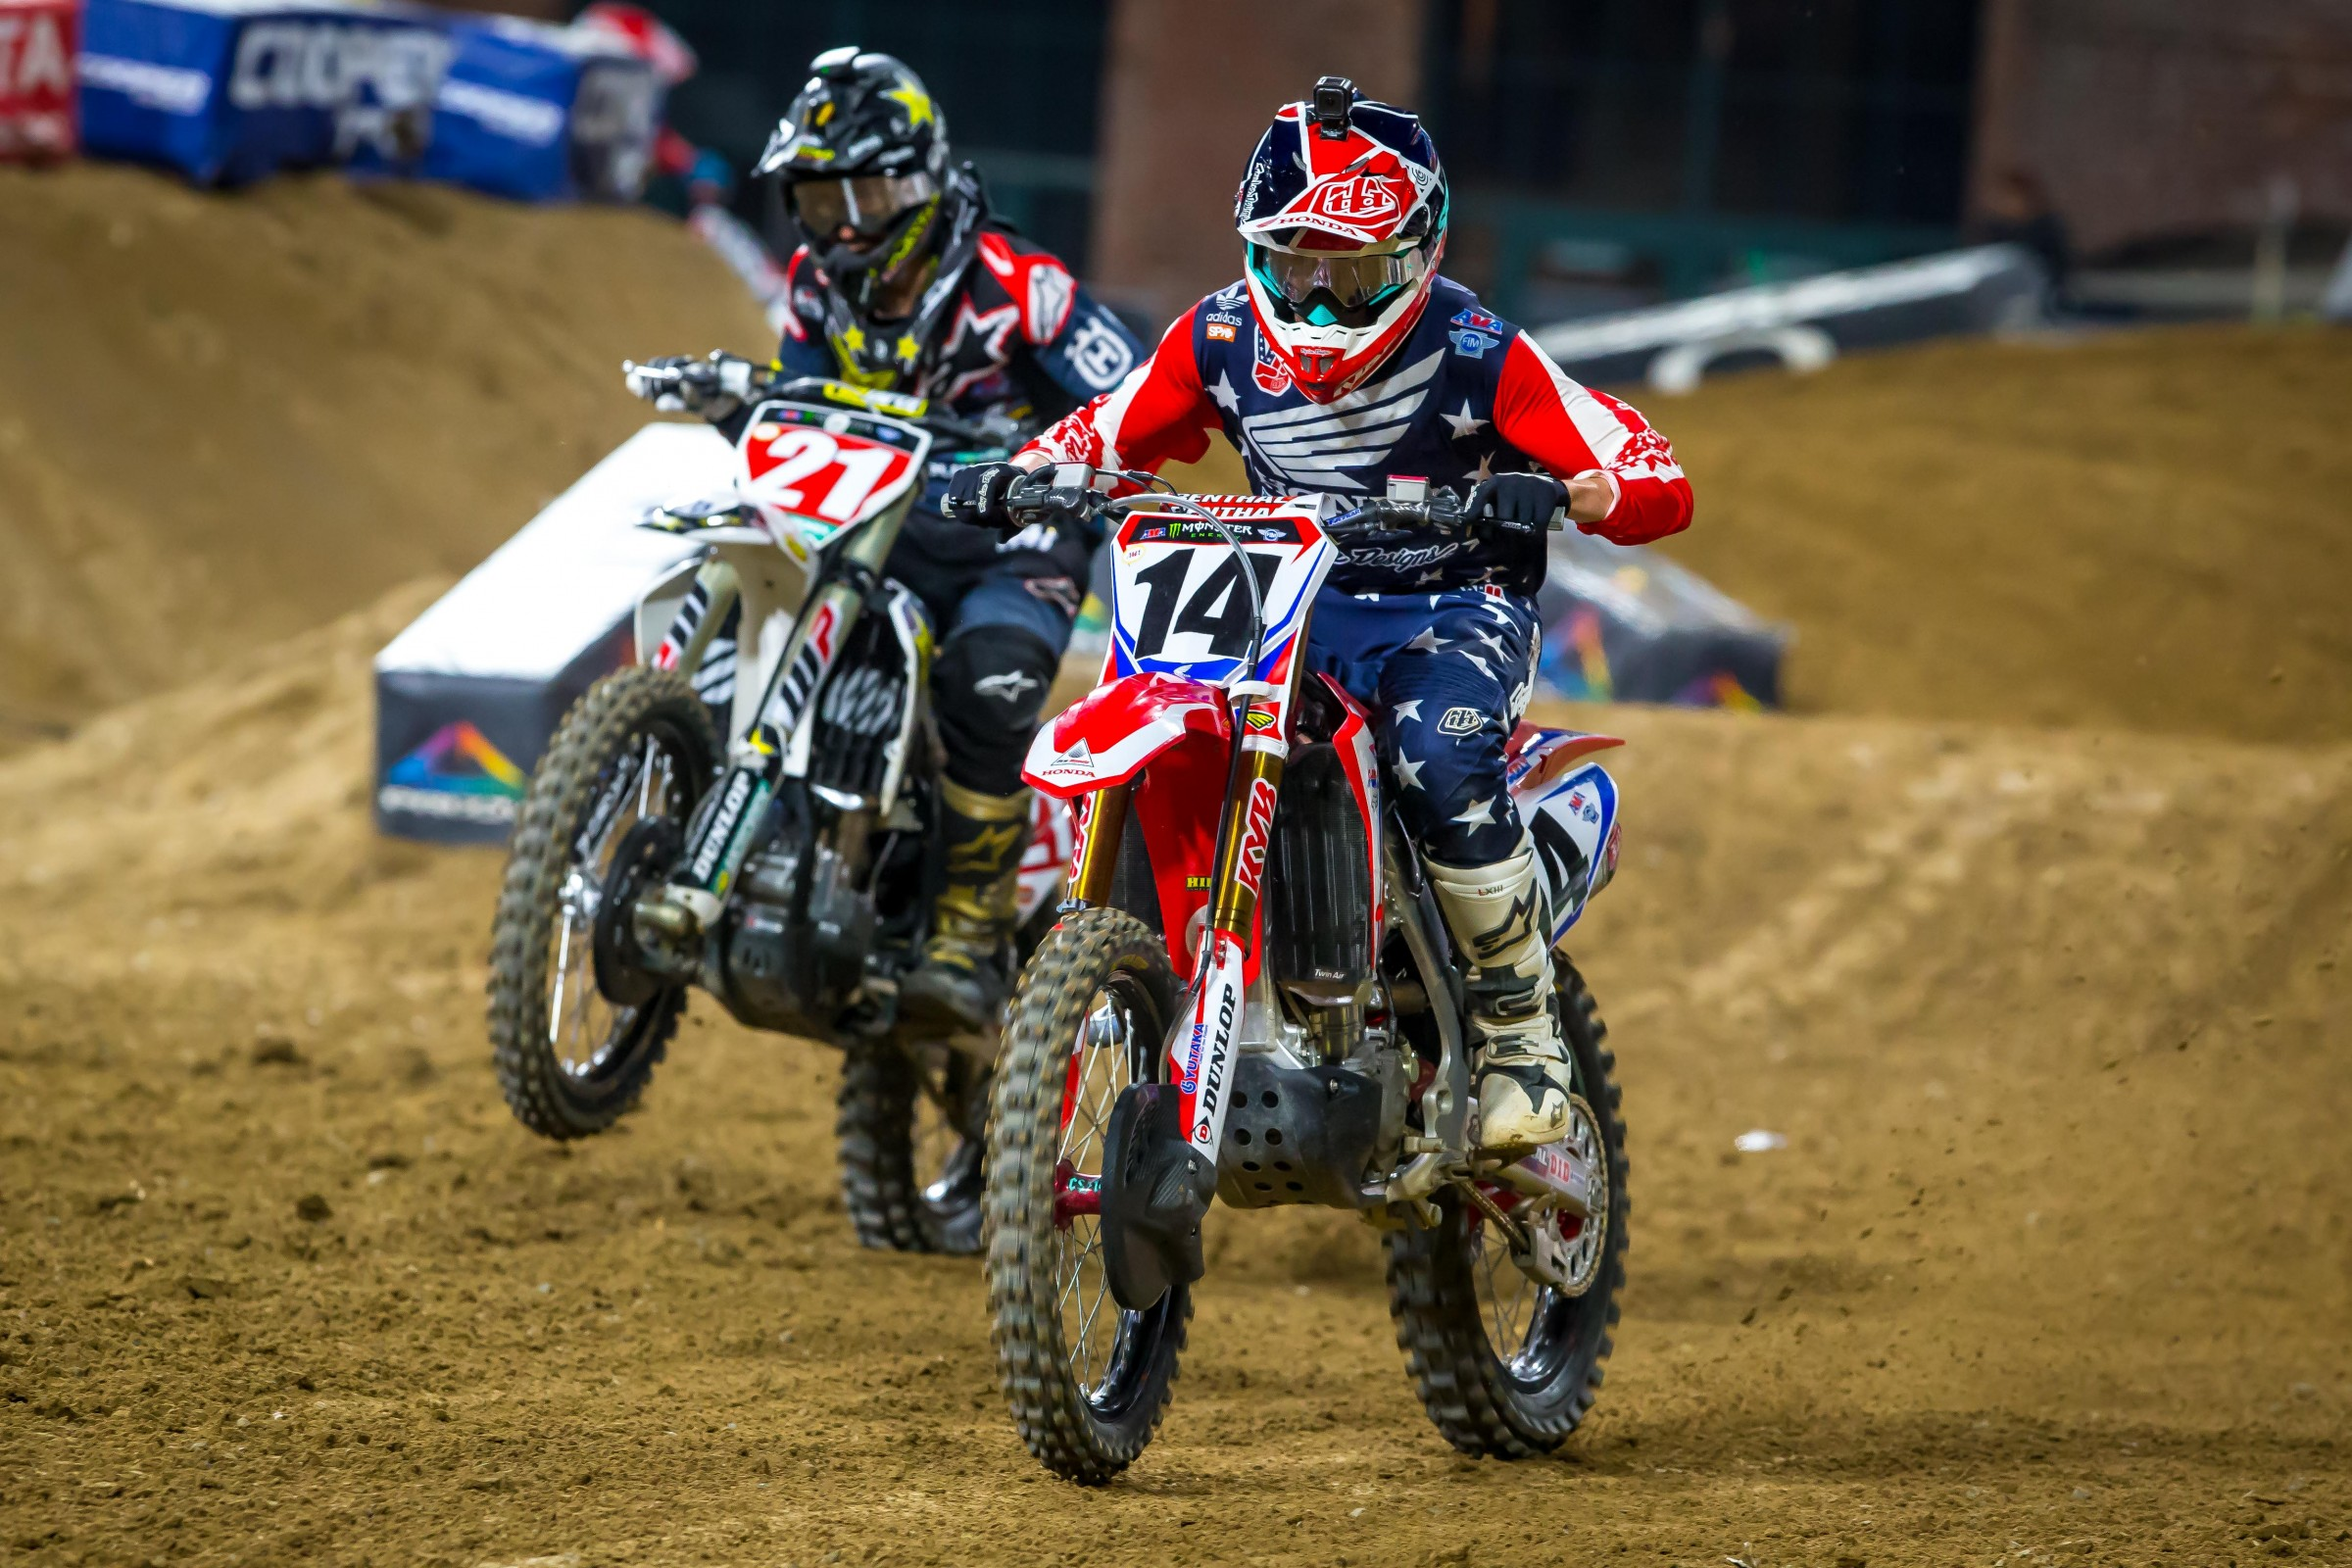 Cole Seely was excellent and even led for twelve laps before sliding back to fourth.